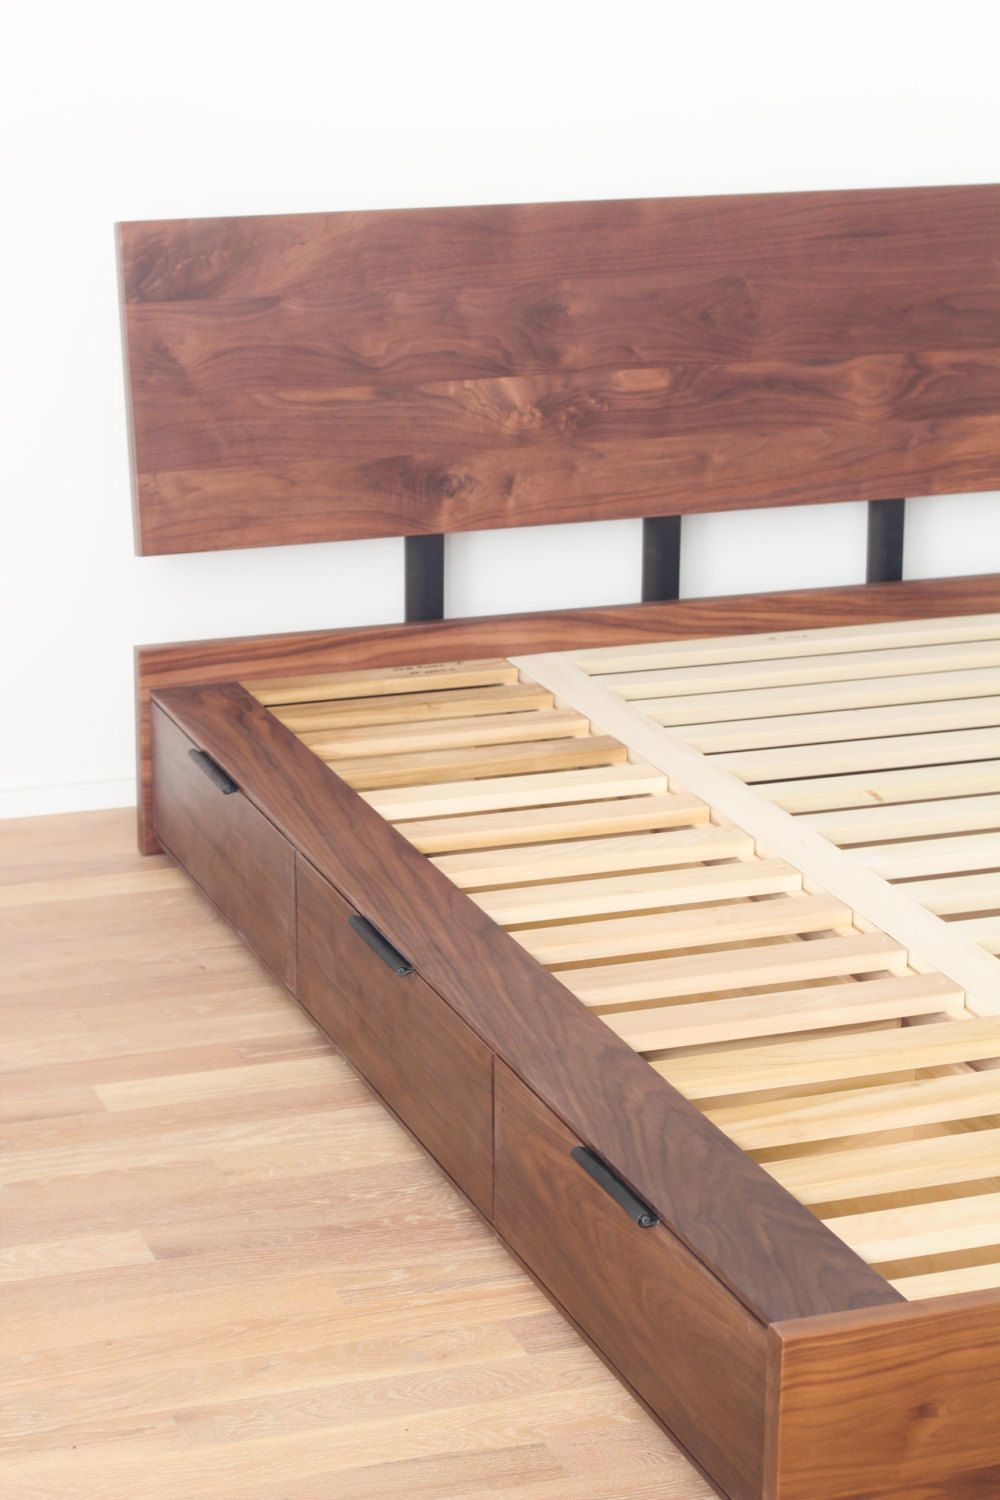 Hudson Bed Solid Wood In 2020 Bed Frame With Storage Wood Bed